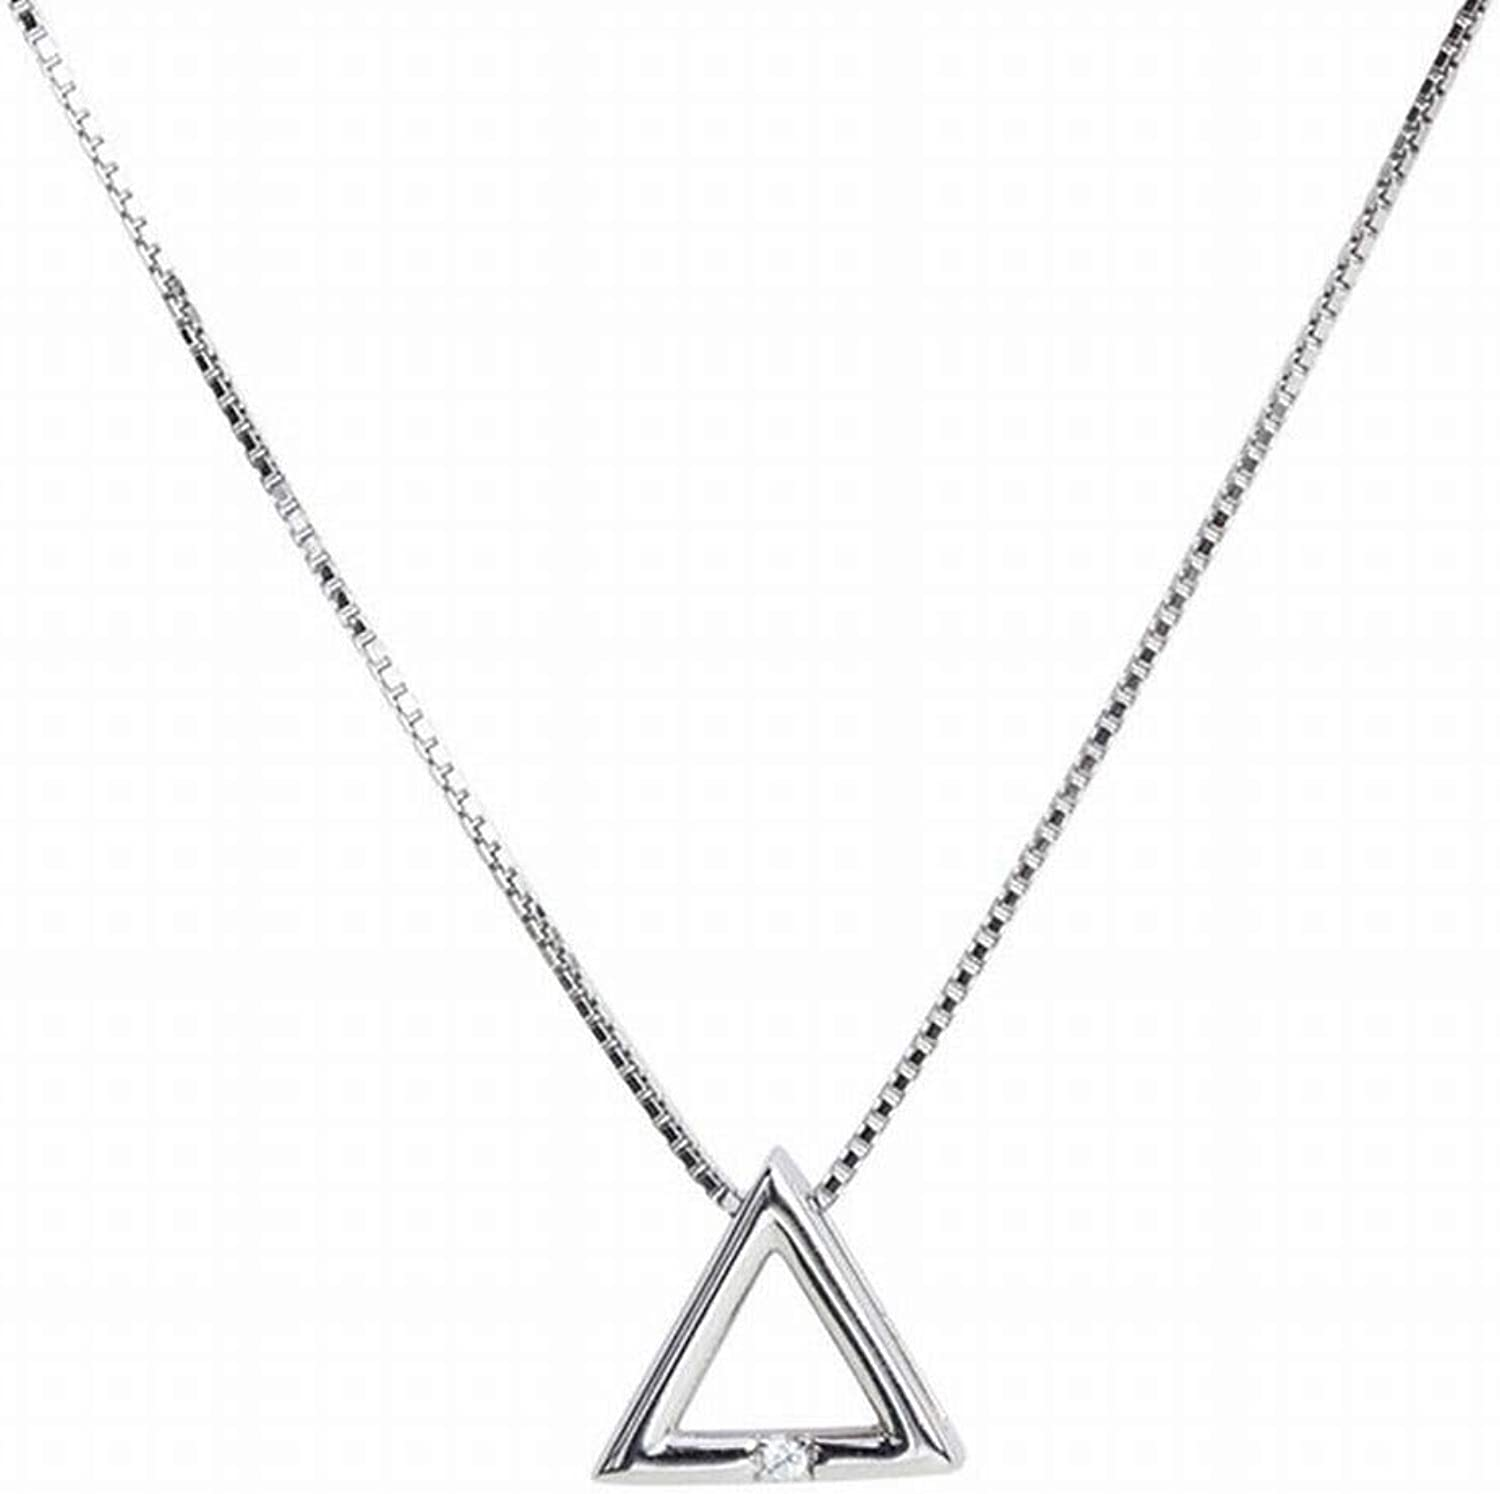 SHOUSHI Women's Simple 925 Silver Geometric Plating Pendant, Pendant S925 Sterling Silver Hollow Triangle Pendant Necklace Clavicle Chain Personality Natural Fashion Wild Student Female